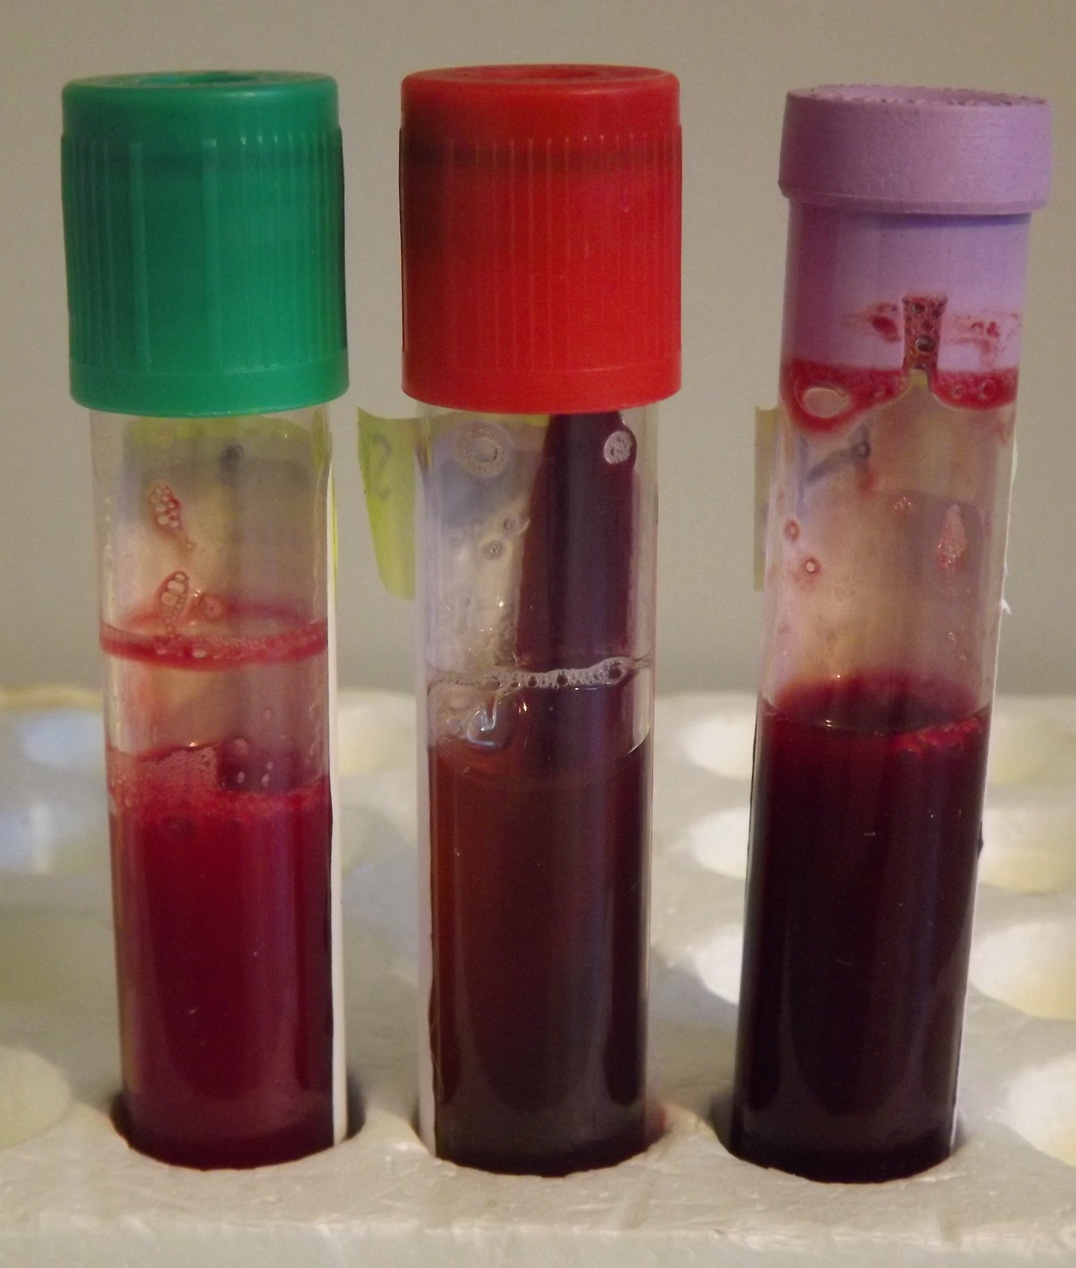 Selecting the right blood test tube and techniques for an accurate common blood tubes lithium heparin green clotted red and edta nvjuhfo Image collections